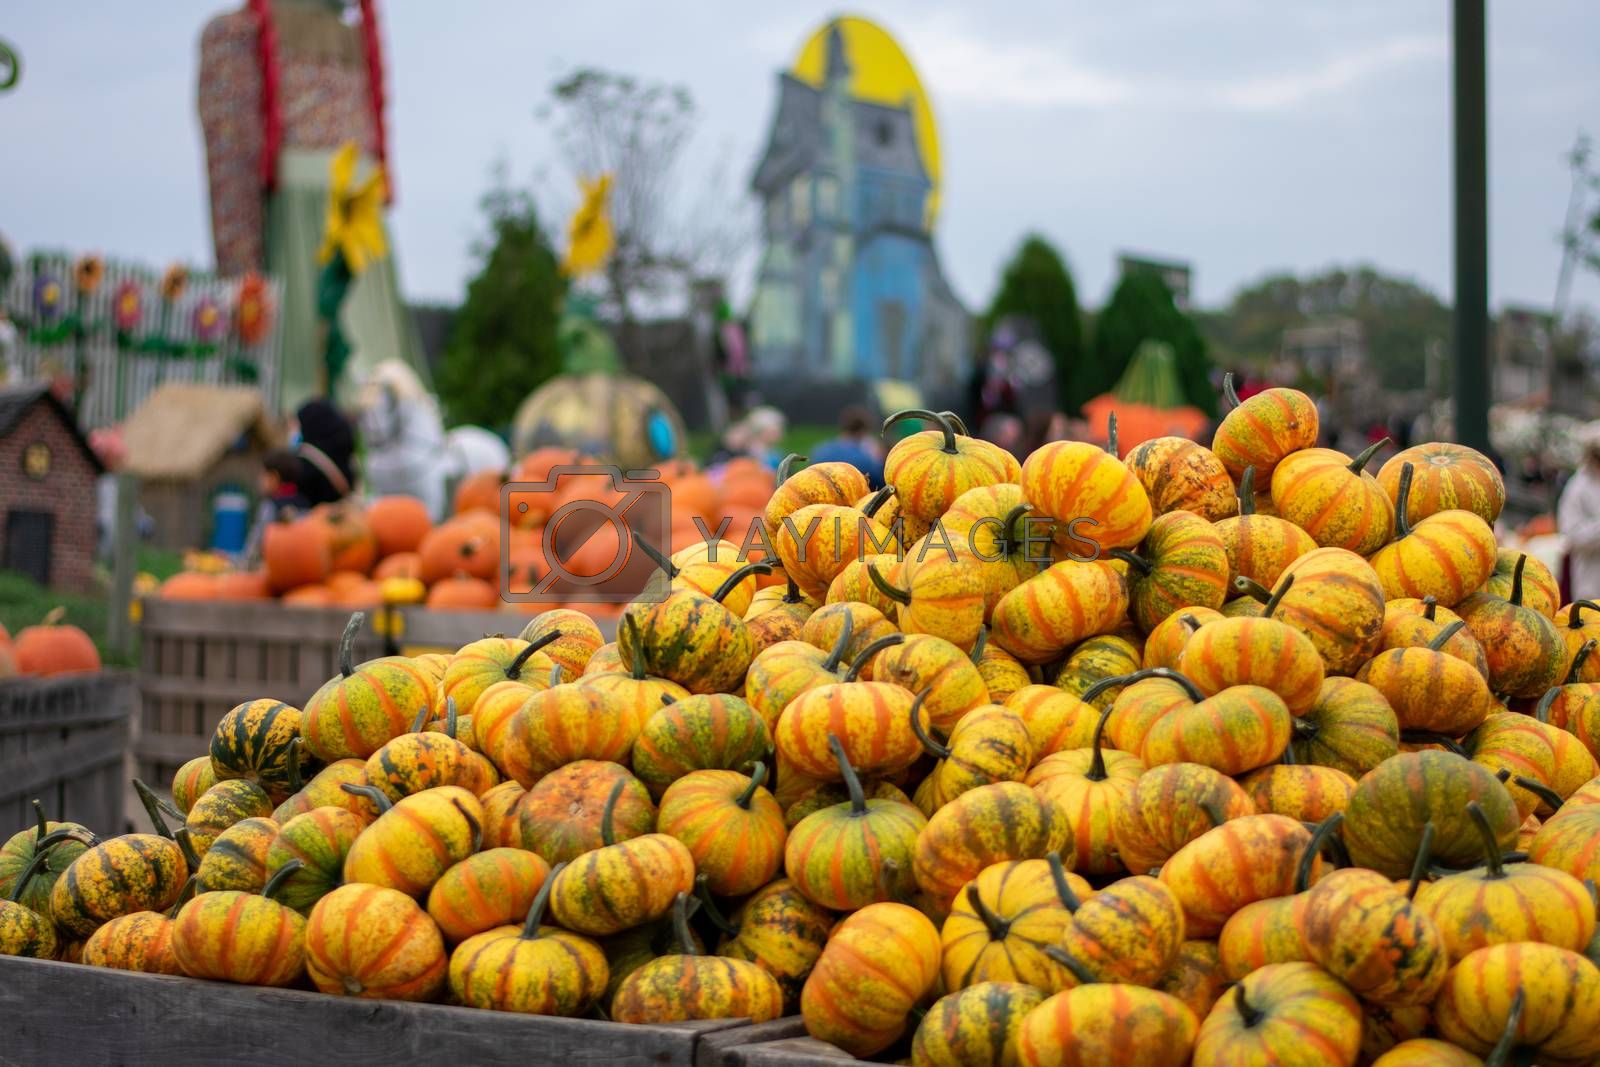 A Pile of Small Yellow Pumpkins With Stripes at a Farmer's Market Decorated For Fall and Halloween